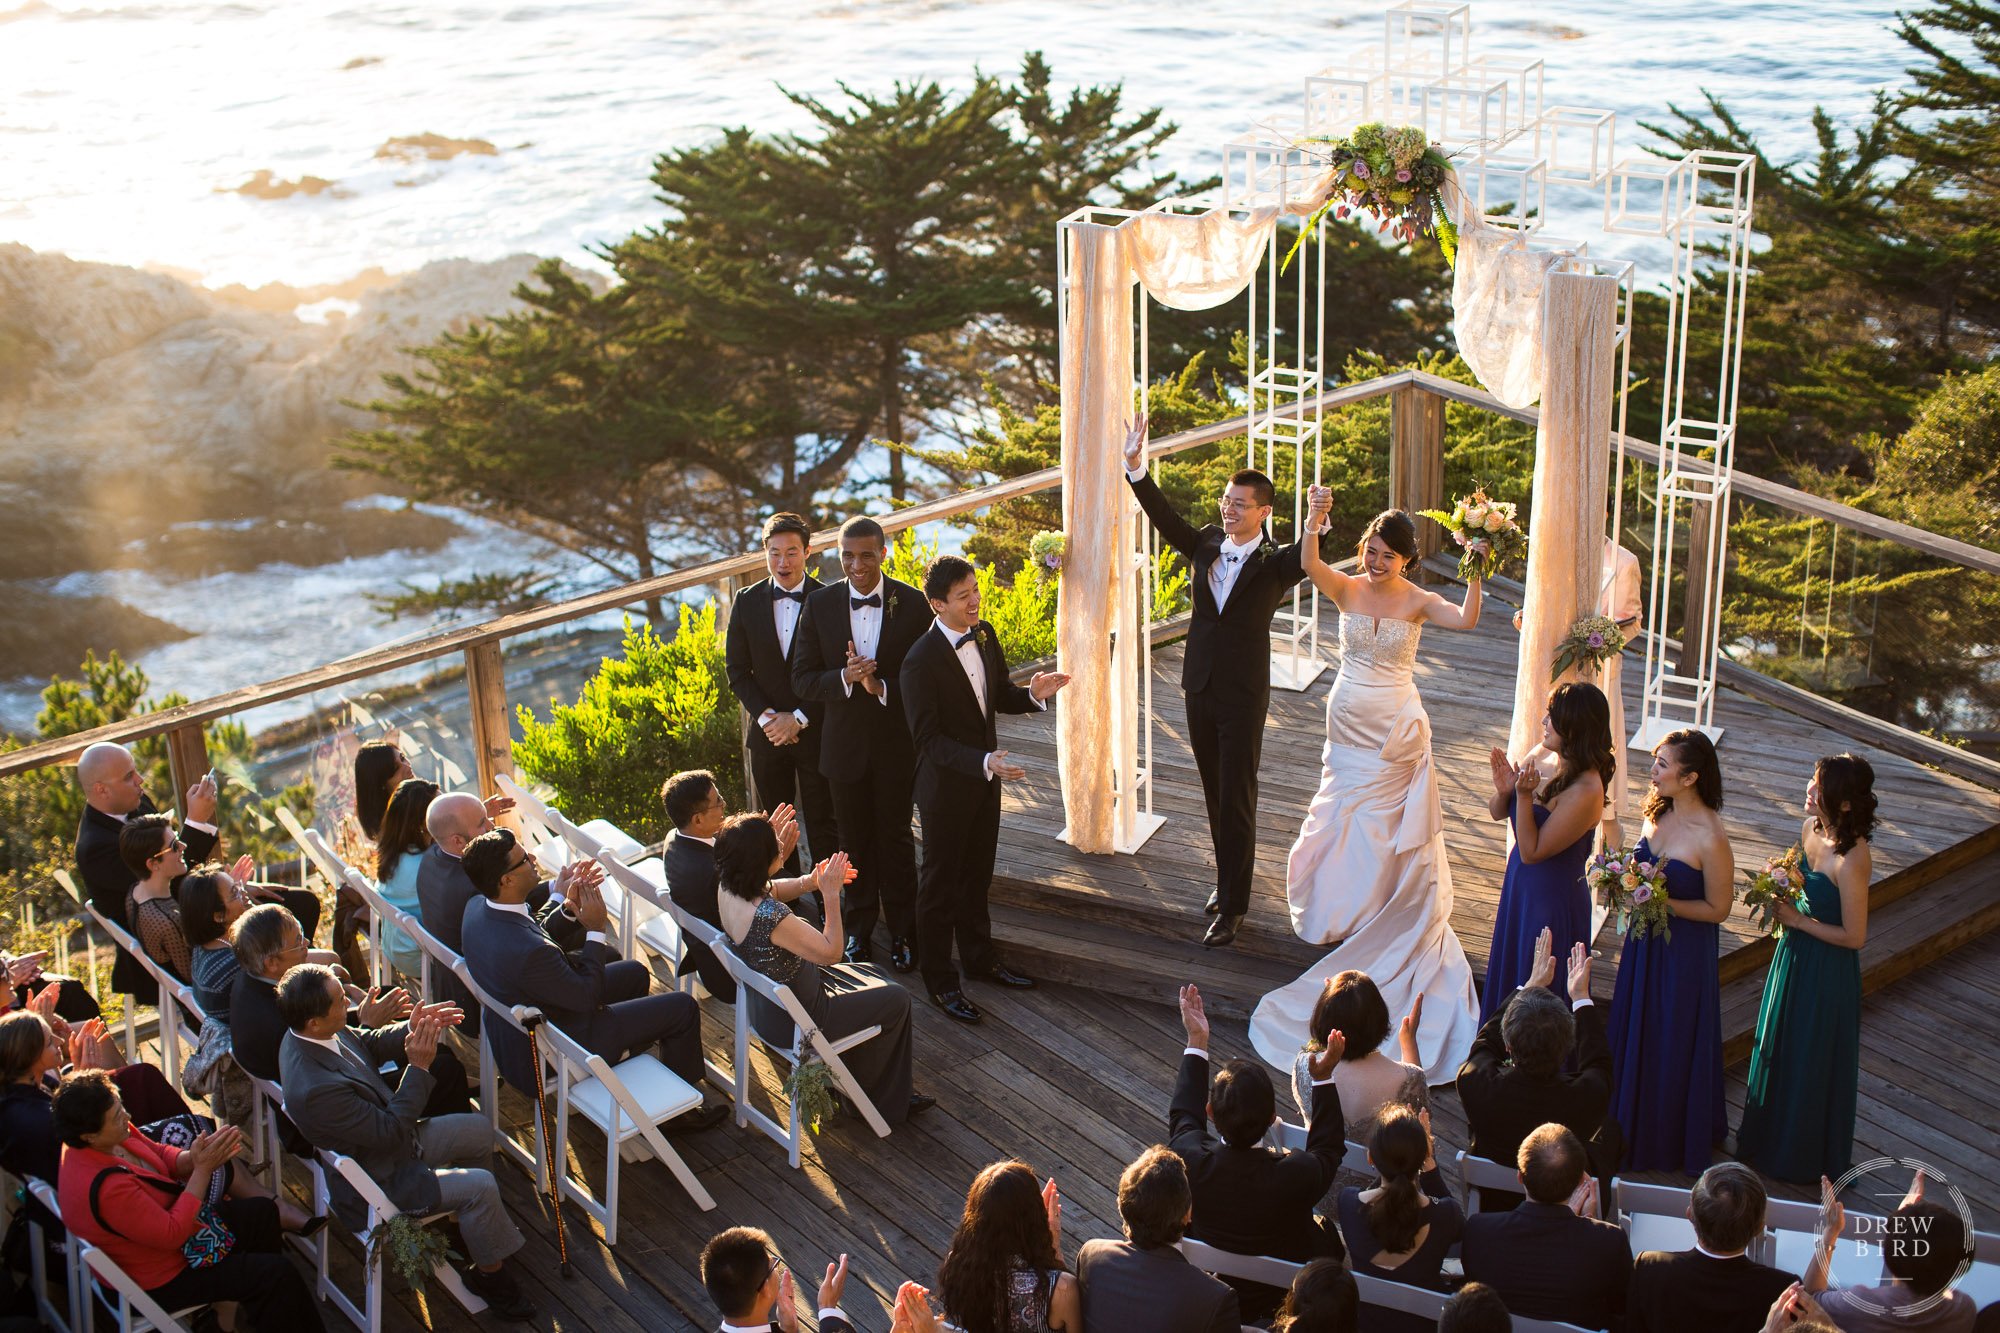 Bride and groom with arms raised up in the air during wedding ceremony. Hyatt Carmel Highlands outdoor wedding with pacific ocean. Big Sur, California wedding. San Francisco wedding photojournalist Drew Bird Photo.